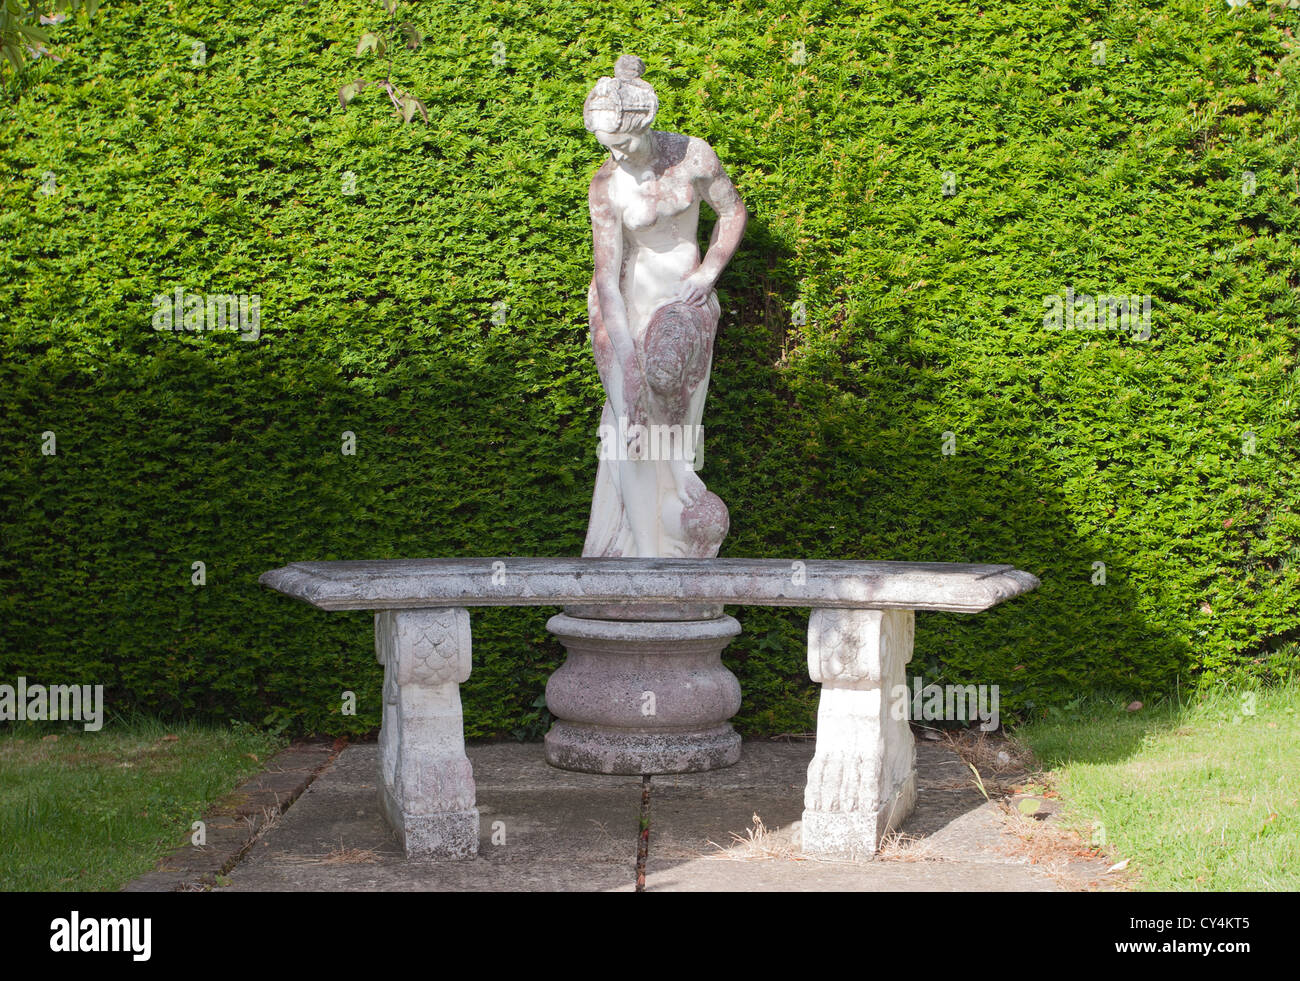 A Stone Statue And Bench Sit In An English Country Garden In Front Of A  Green Hedge